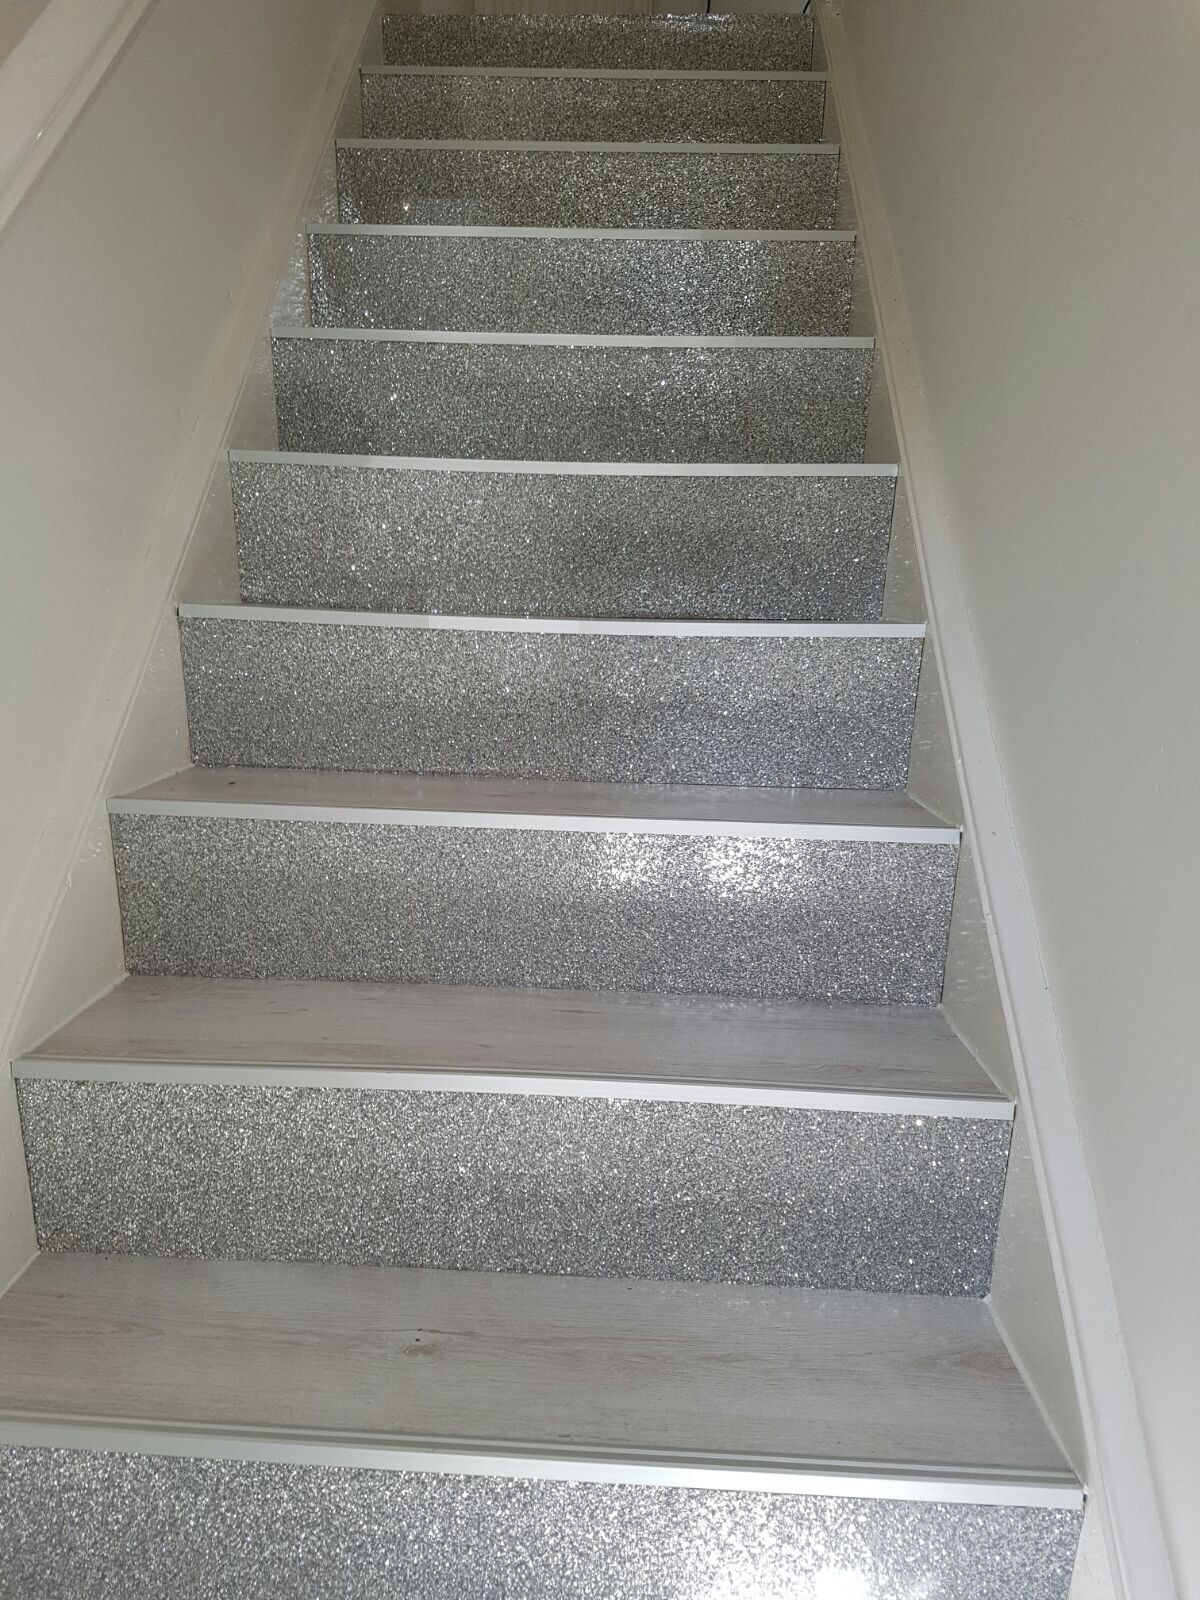 Pin By Connie On Bling And Sparkle Glitter Stairs   Glitter Stairs With Carpet